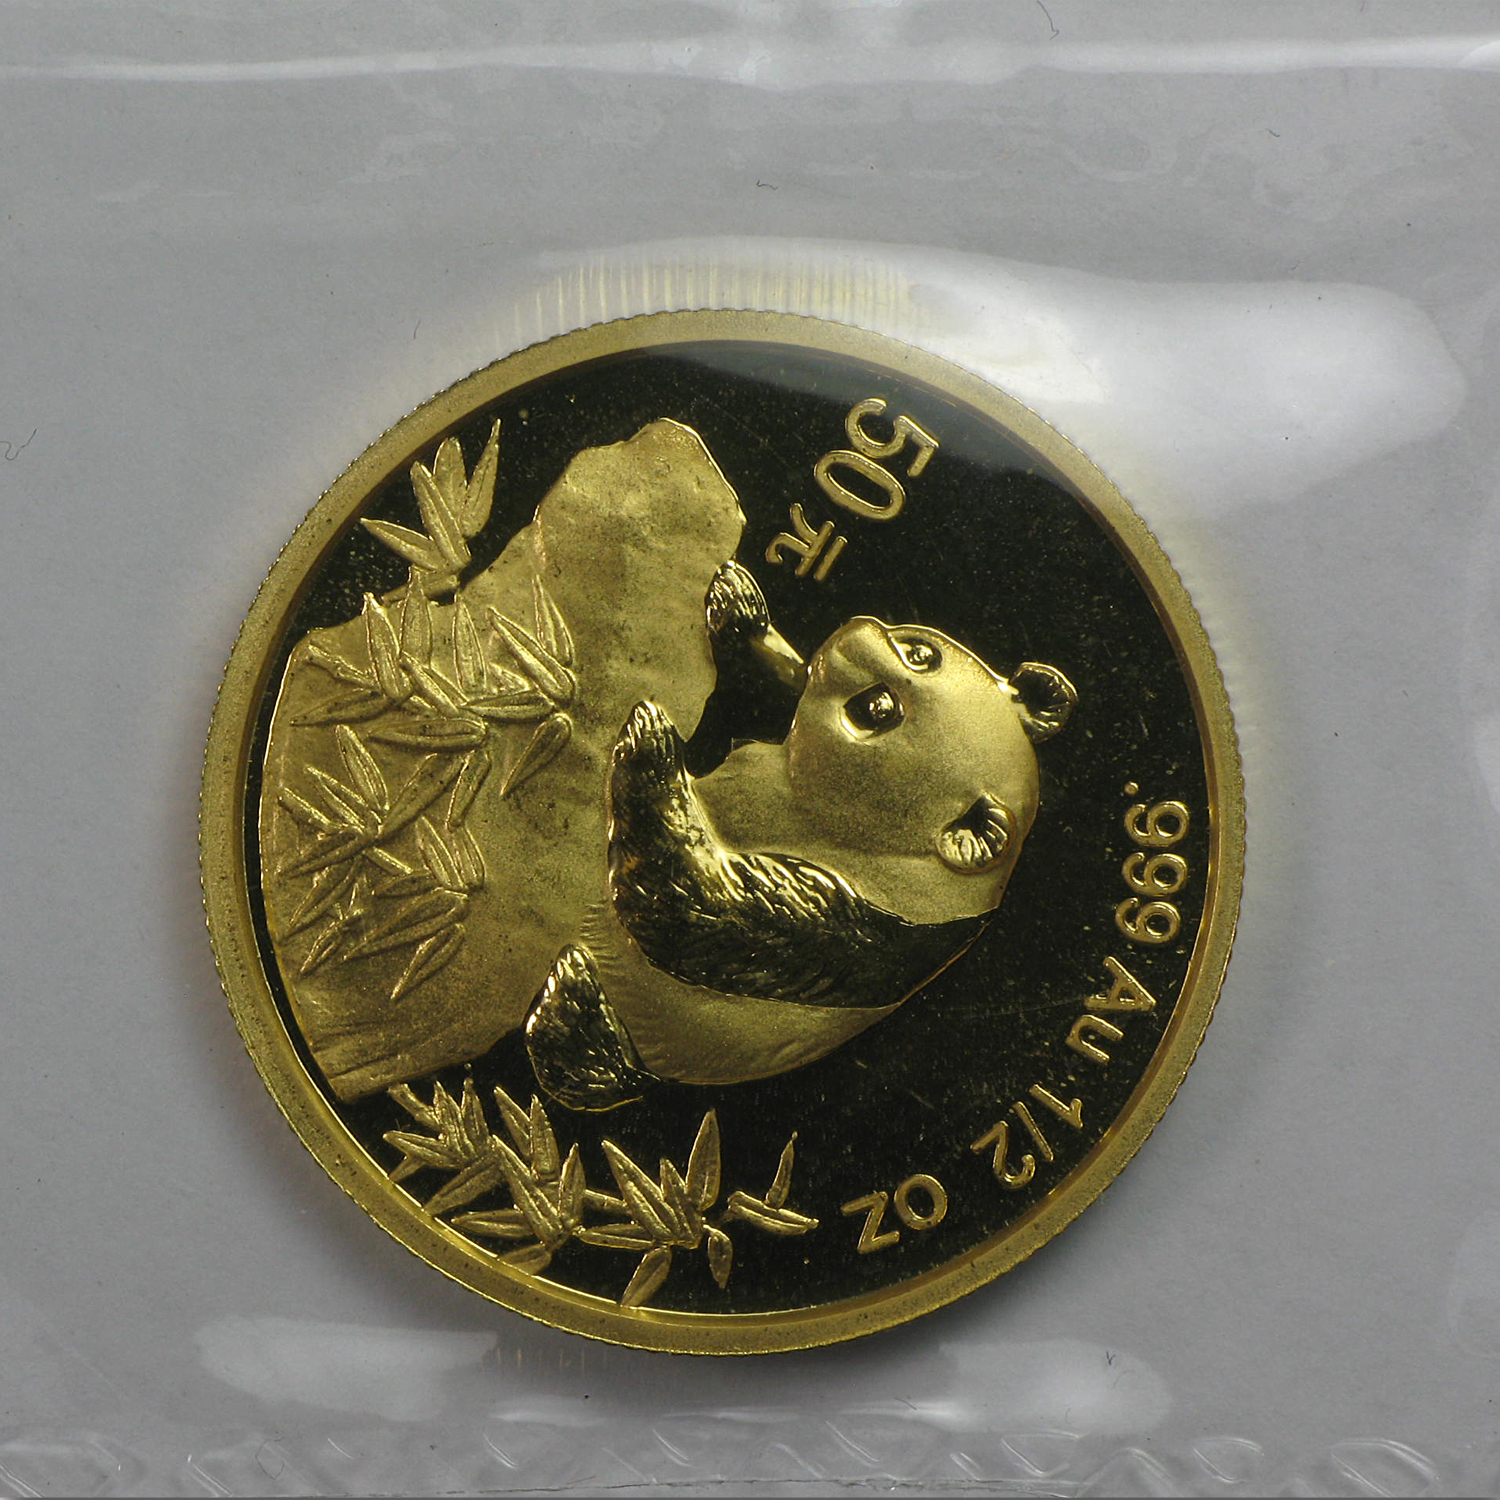 1999 (1/2 oz) Gold Chinese Pandas - Large Date No Serif (Sealed)